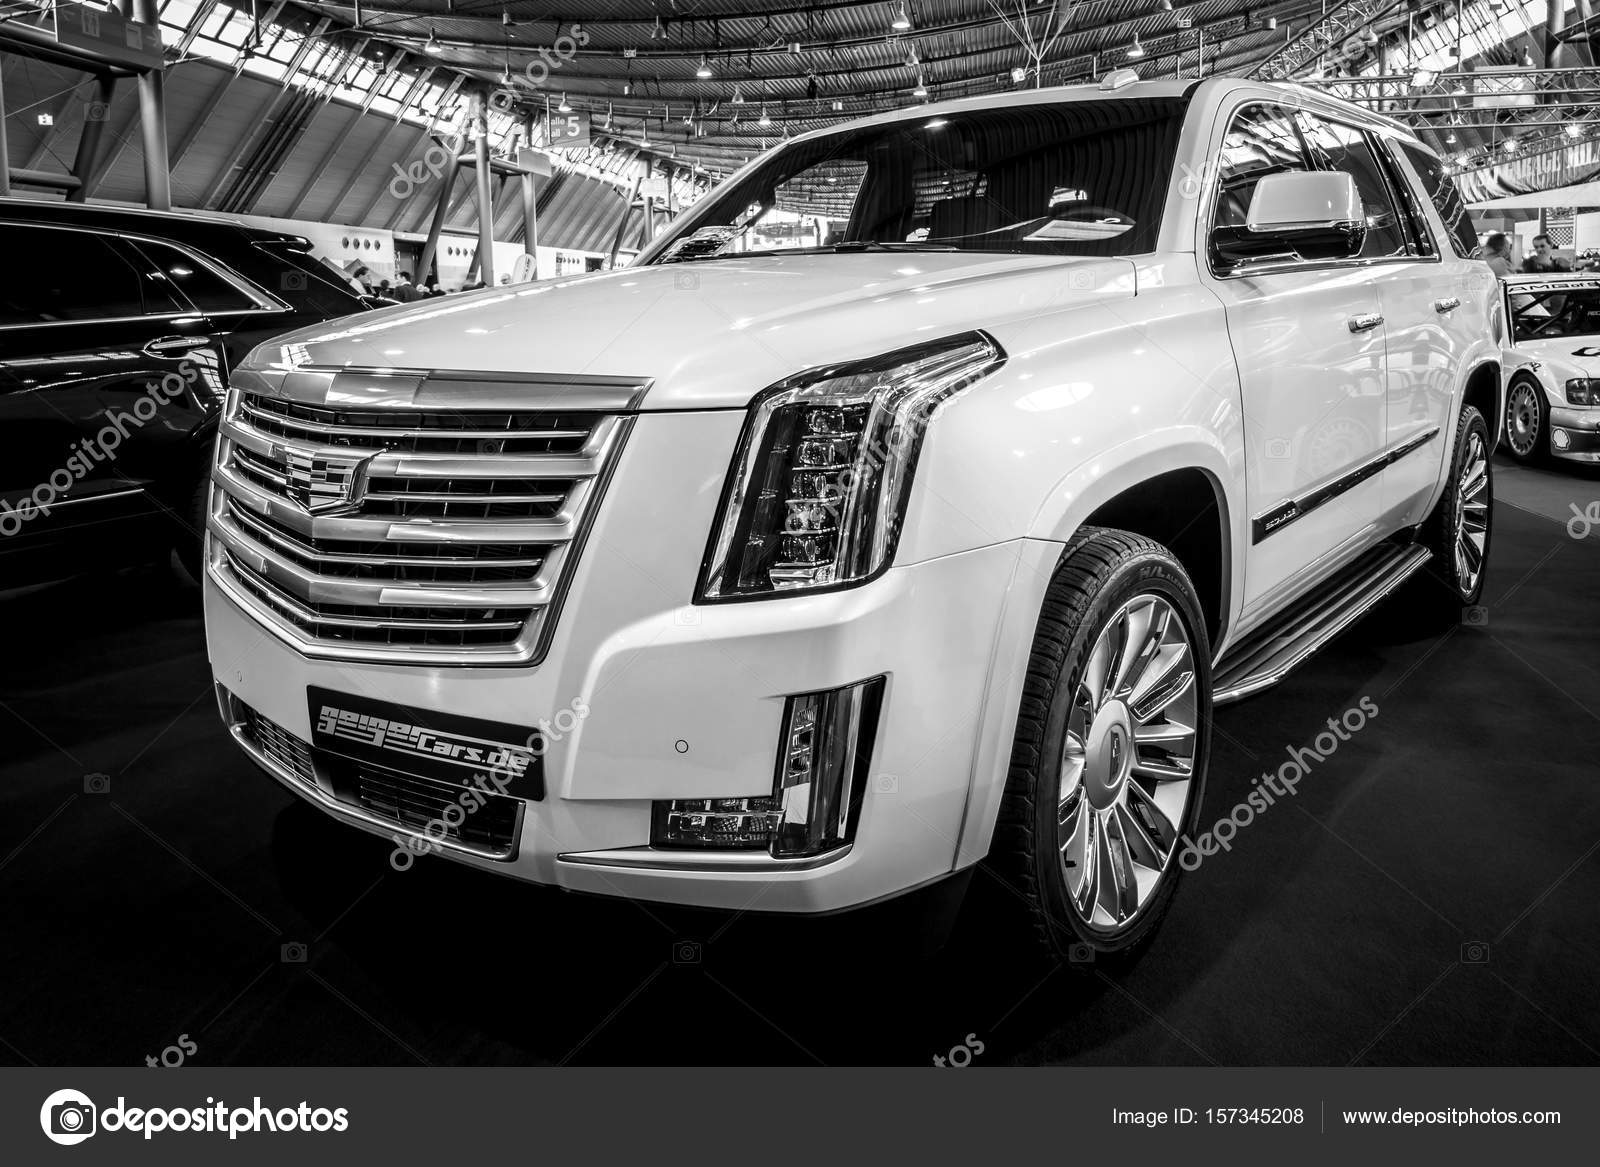 vus de luxe suv cadillac escalade platinum 2017 photo ditoriale s kohl 157345208. Black Bedroom Furniture Sets. Home Design Ideas